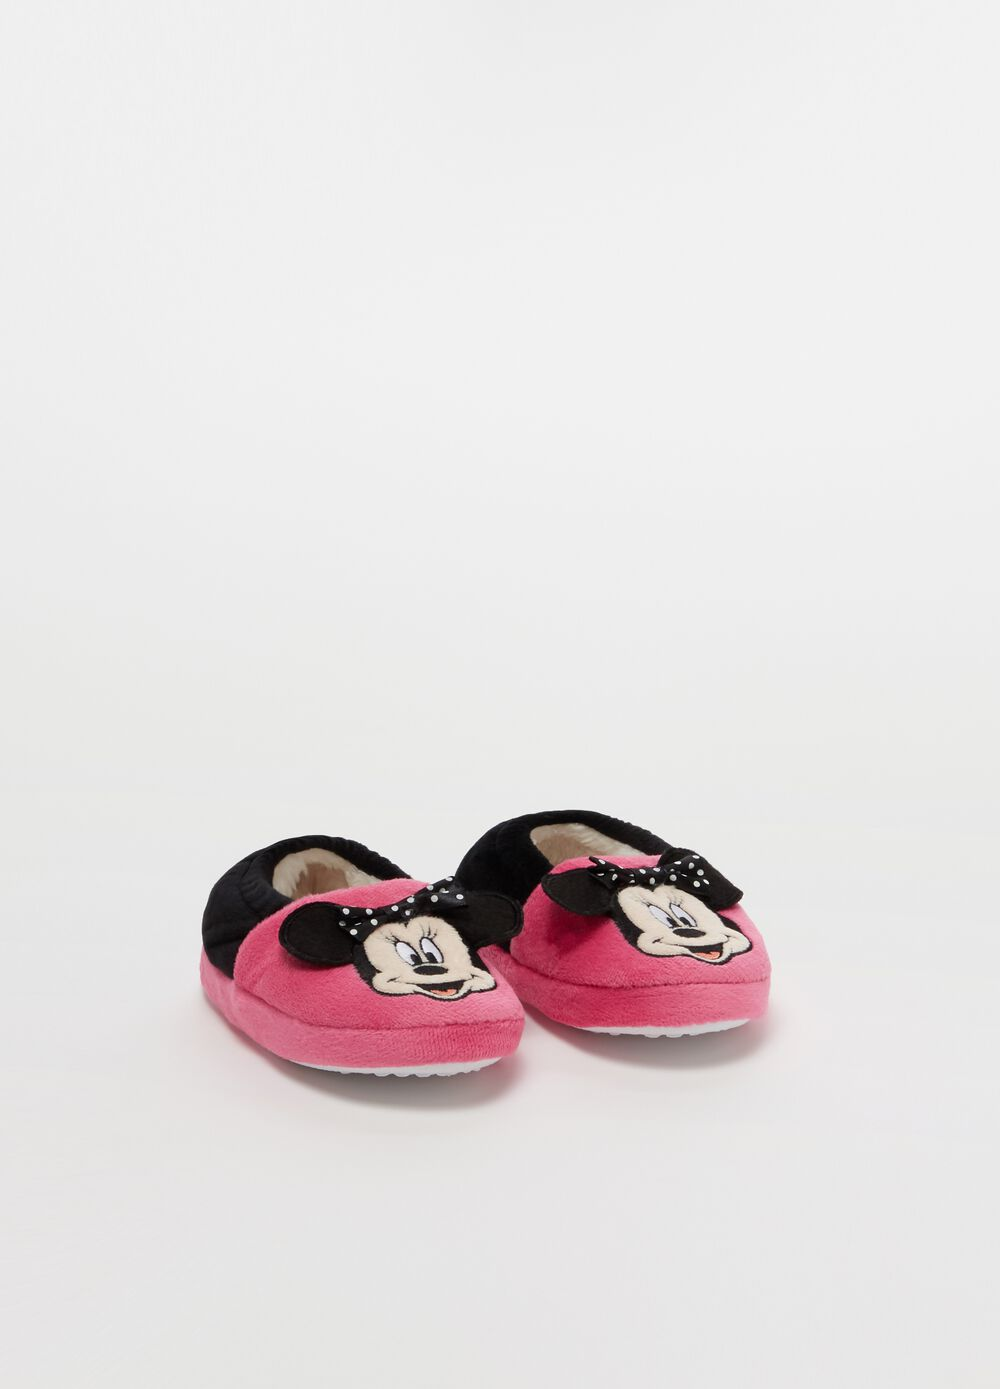 Two-tone slippers with Disney Minnie Mouse embroidery